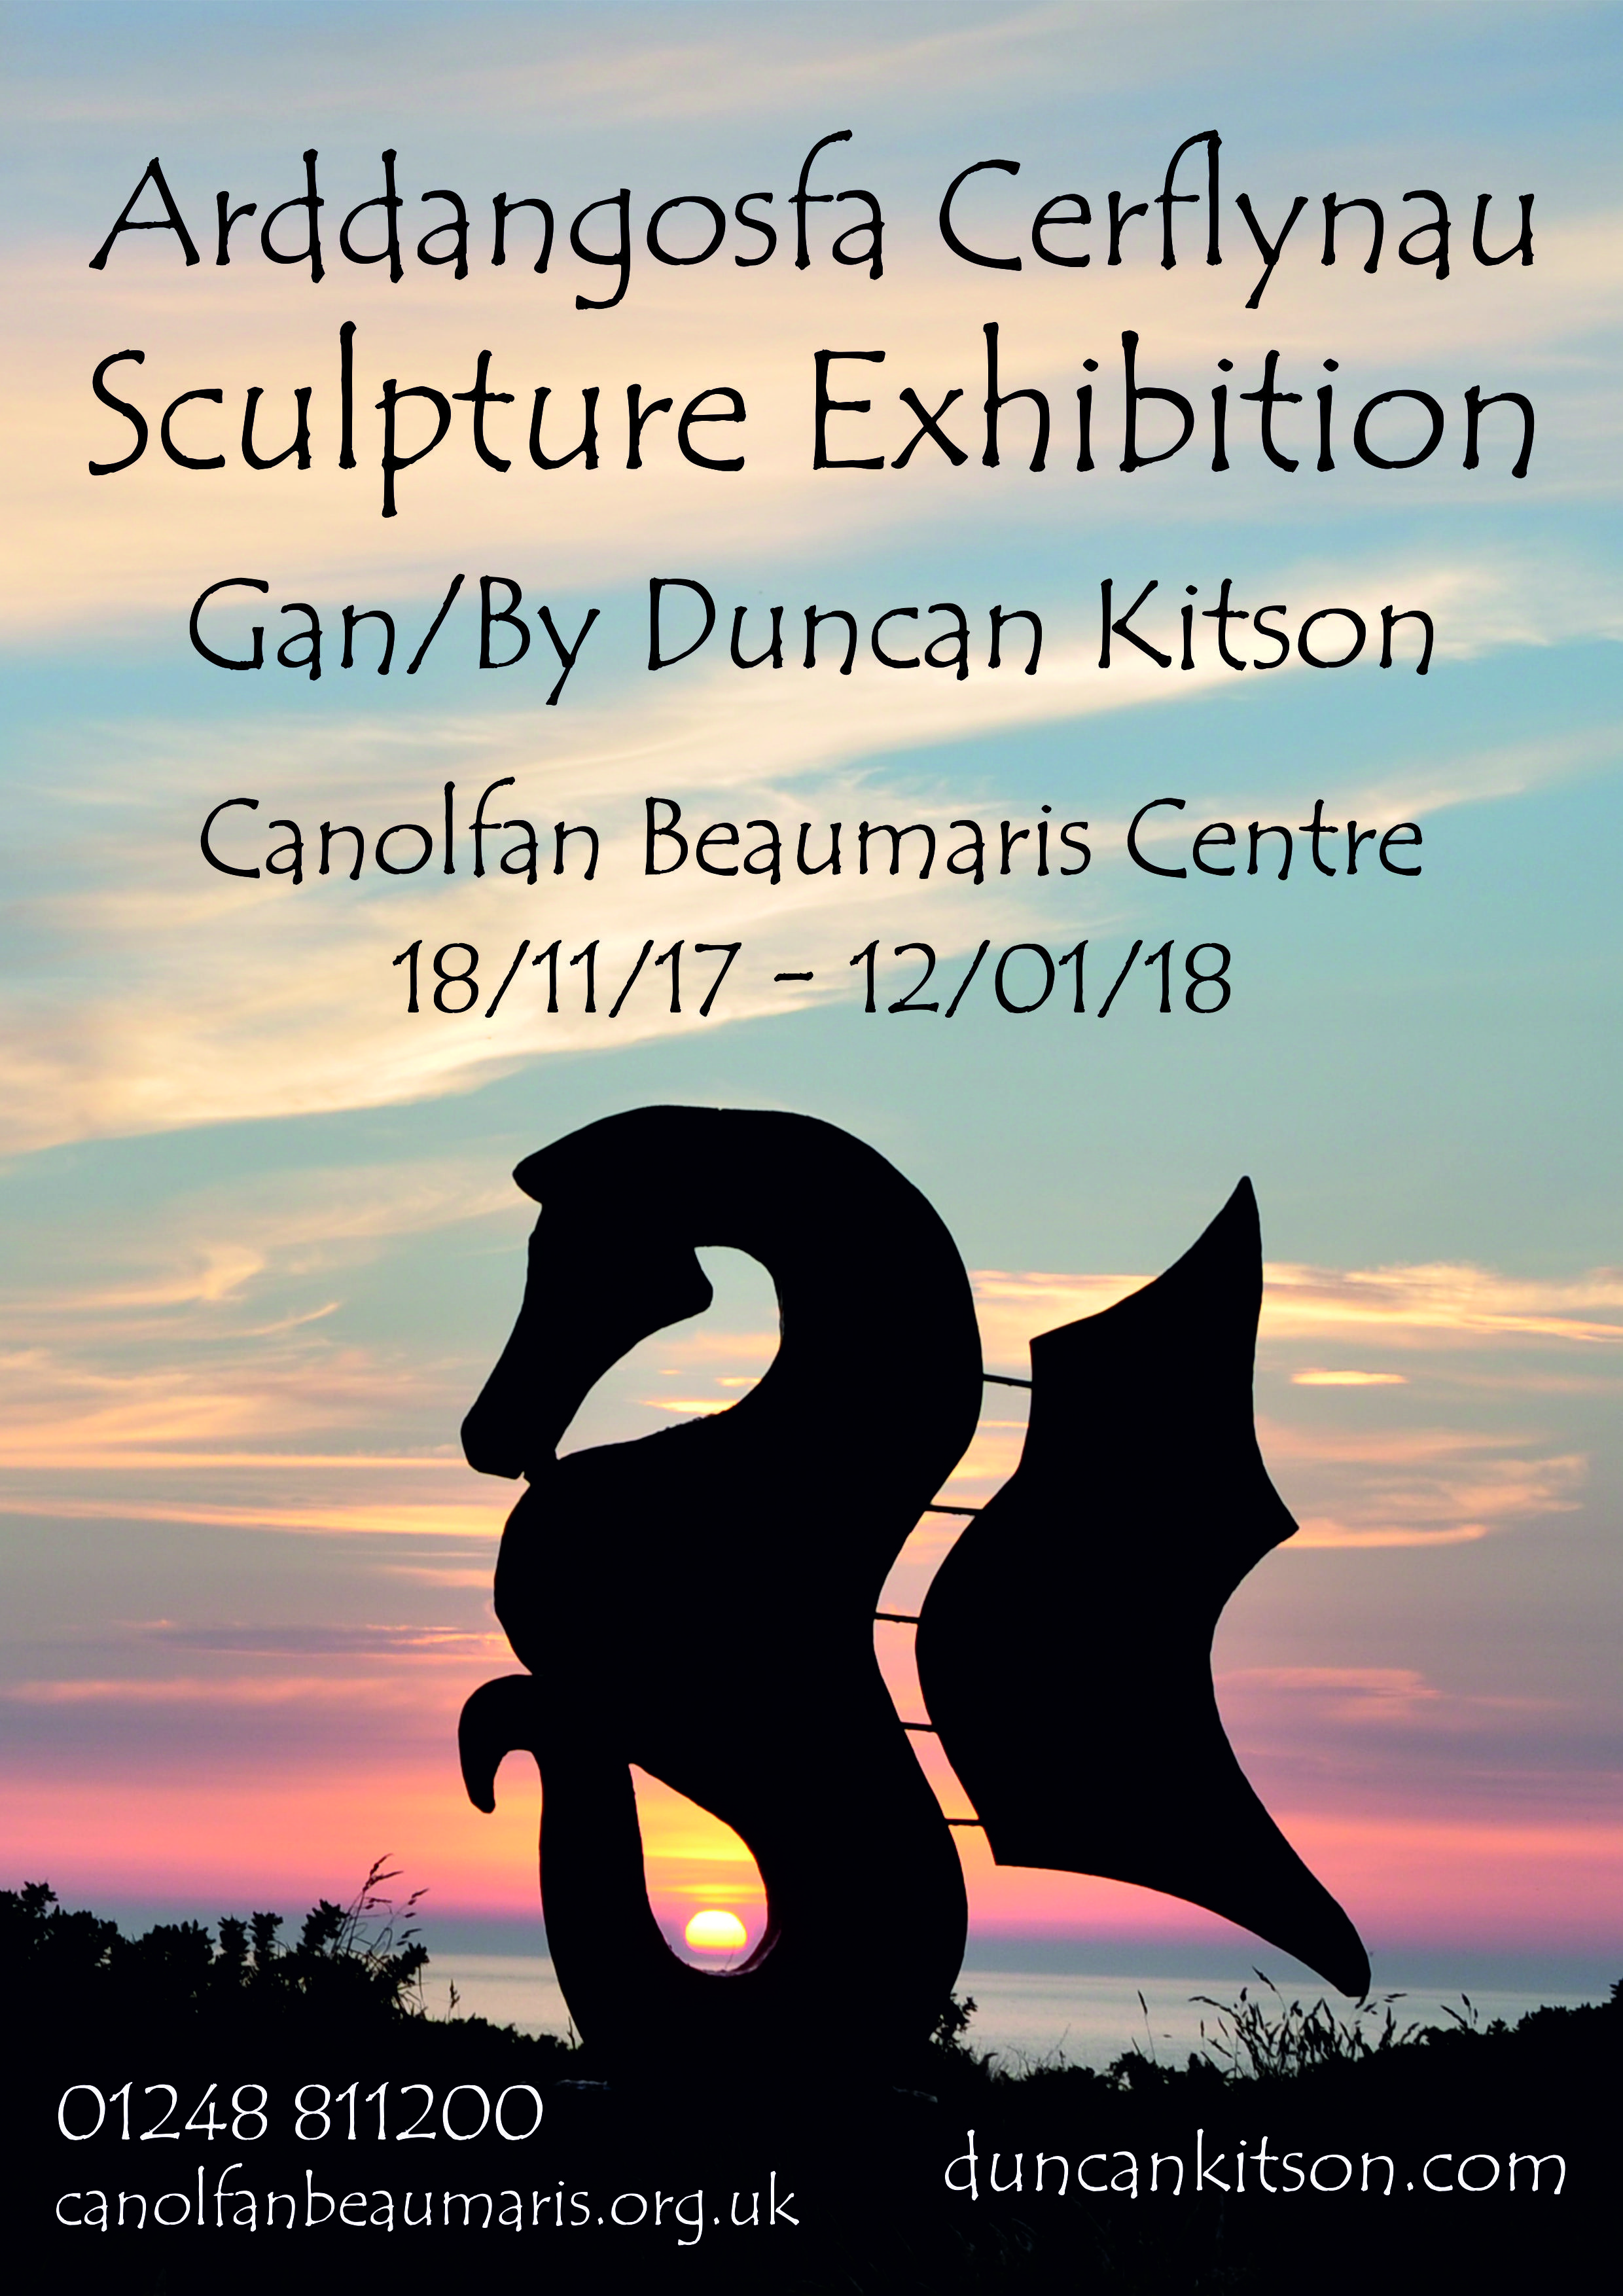 Sculpture Exhibition By Duncan Kitson